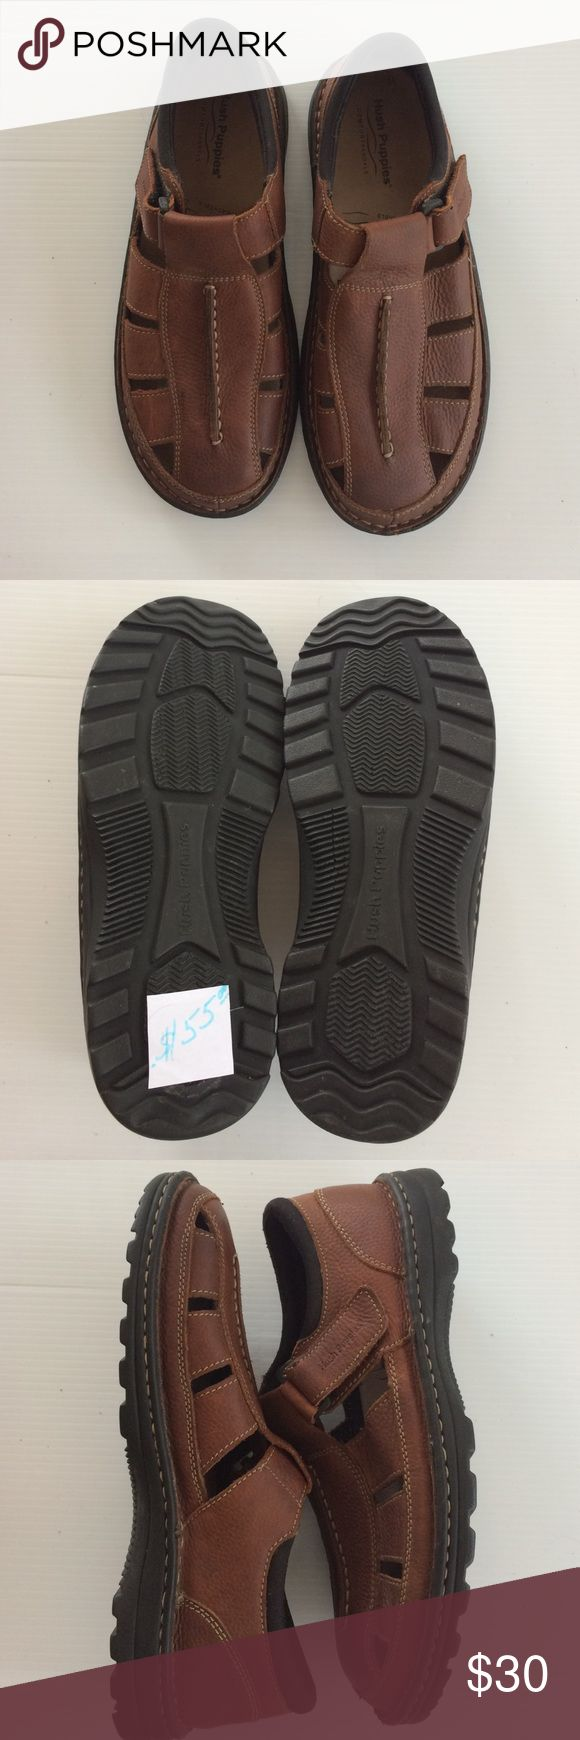 Hush Puppies men Sandals size 11.5 They are awesome never used size 11.5 Hush Puppies Shoes Sandals & Flip-Flops